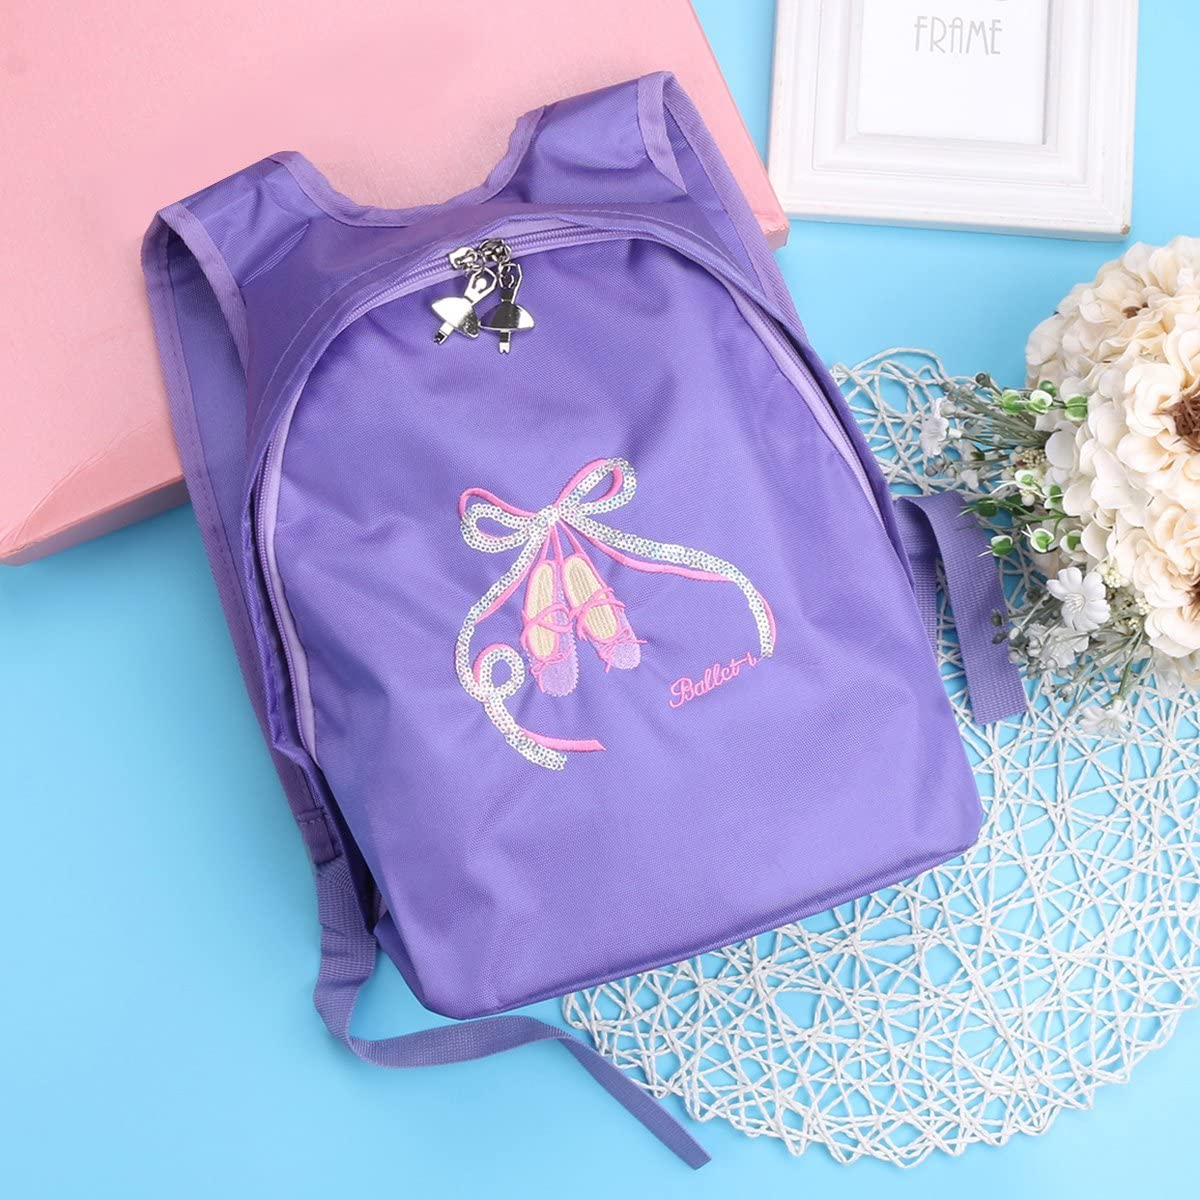 IEFIEL Girls Ballet Shoes Embroidered Dance Shoulder Bag School Gym Enhance Backpack Black One/_Size